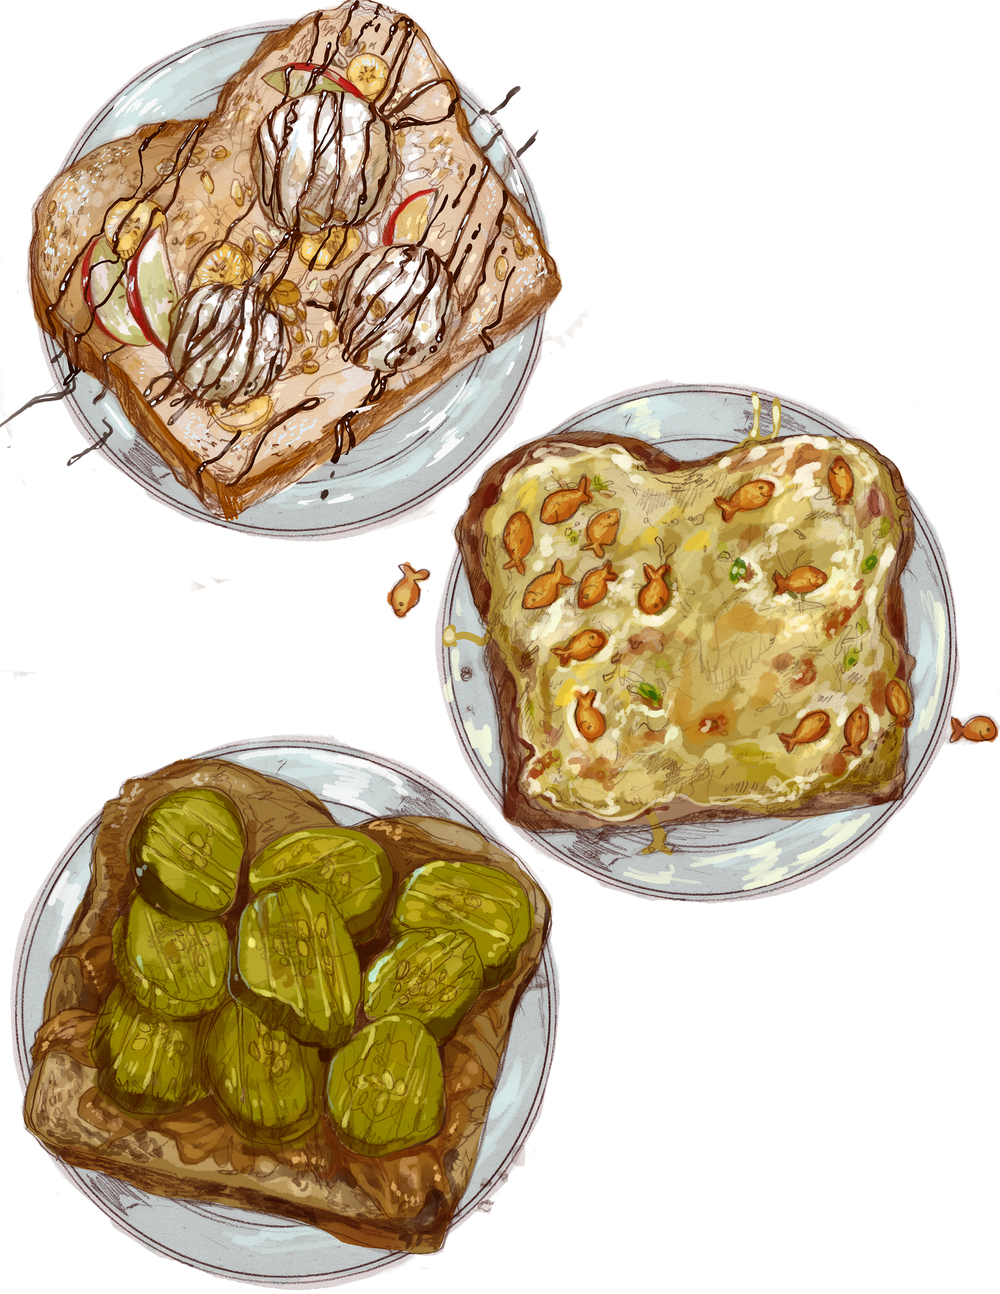 Sandwiches My Friends Eat